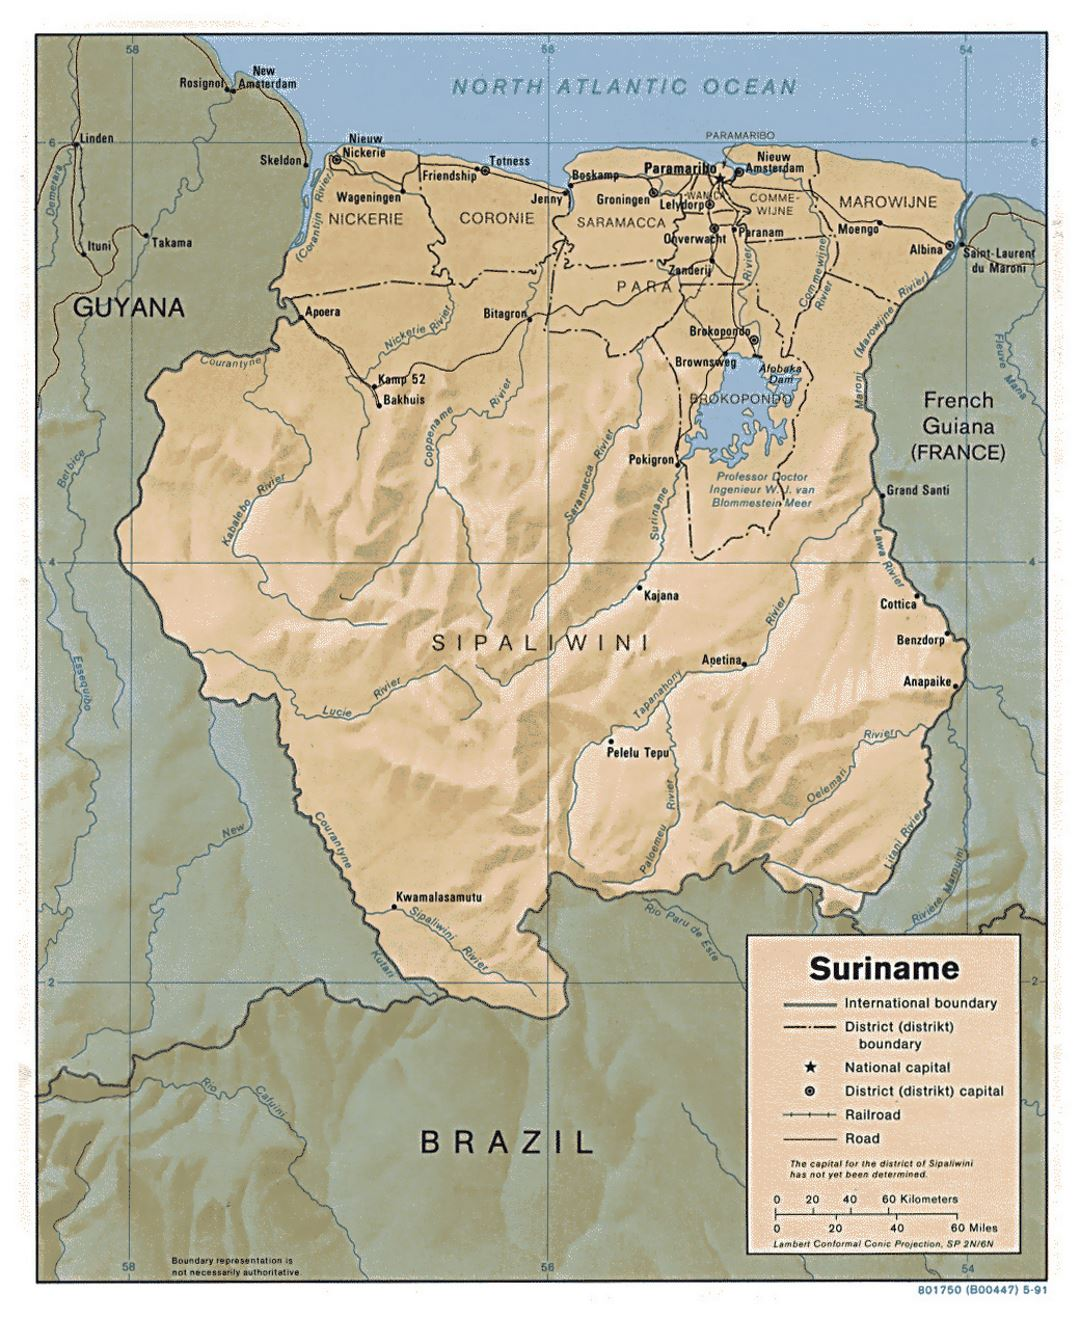 Detailed political and administrative map of Suriname with relief